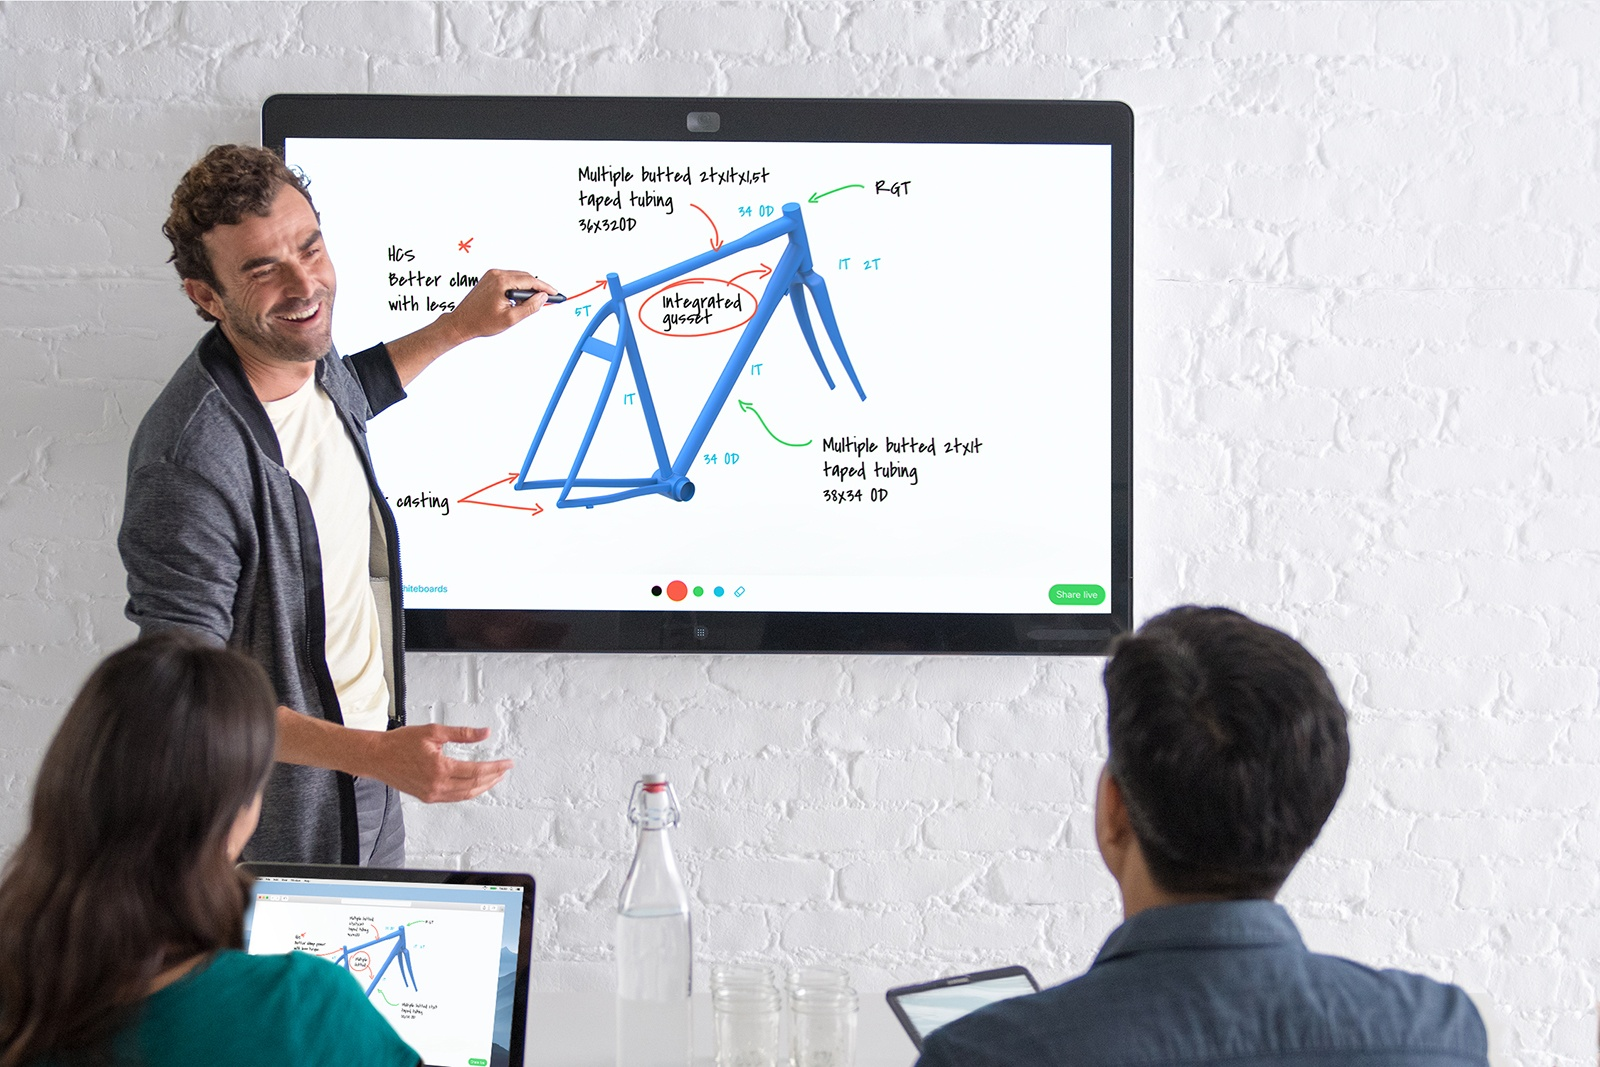 Cisco Spark Board Image 3.jpg